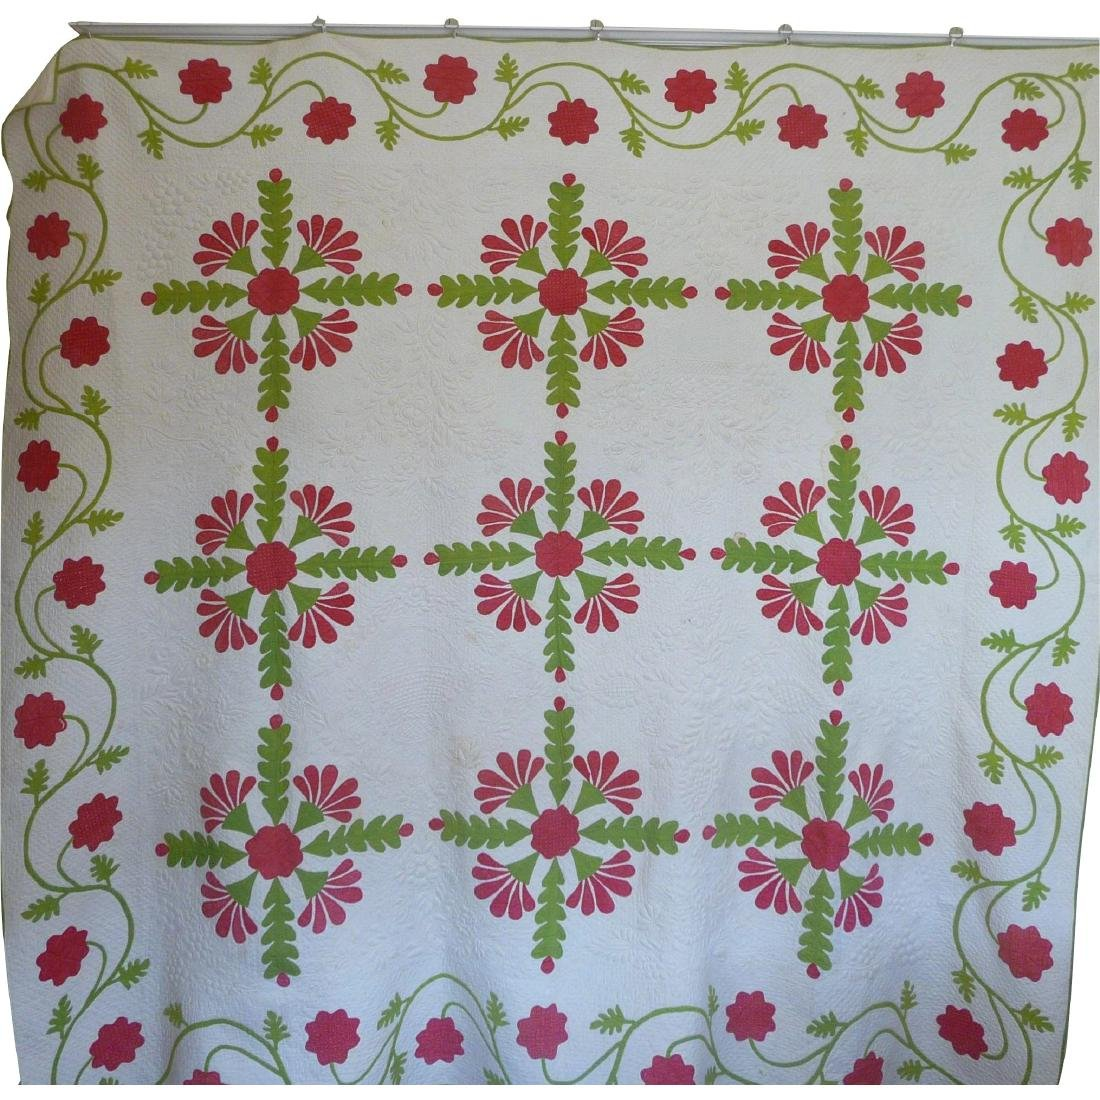 Trapunto Applique Quilt Exquisite Initialed 1800's - 2